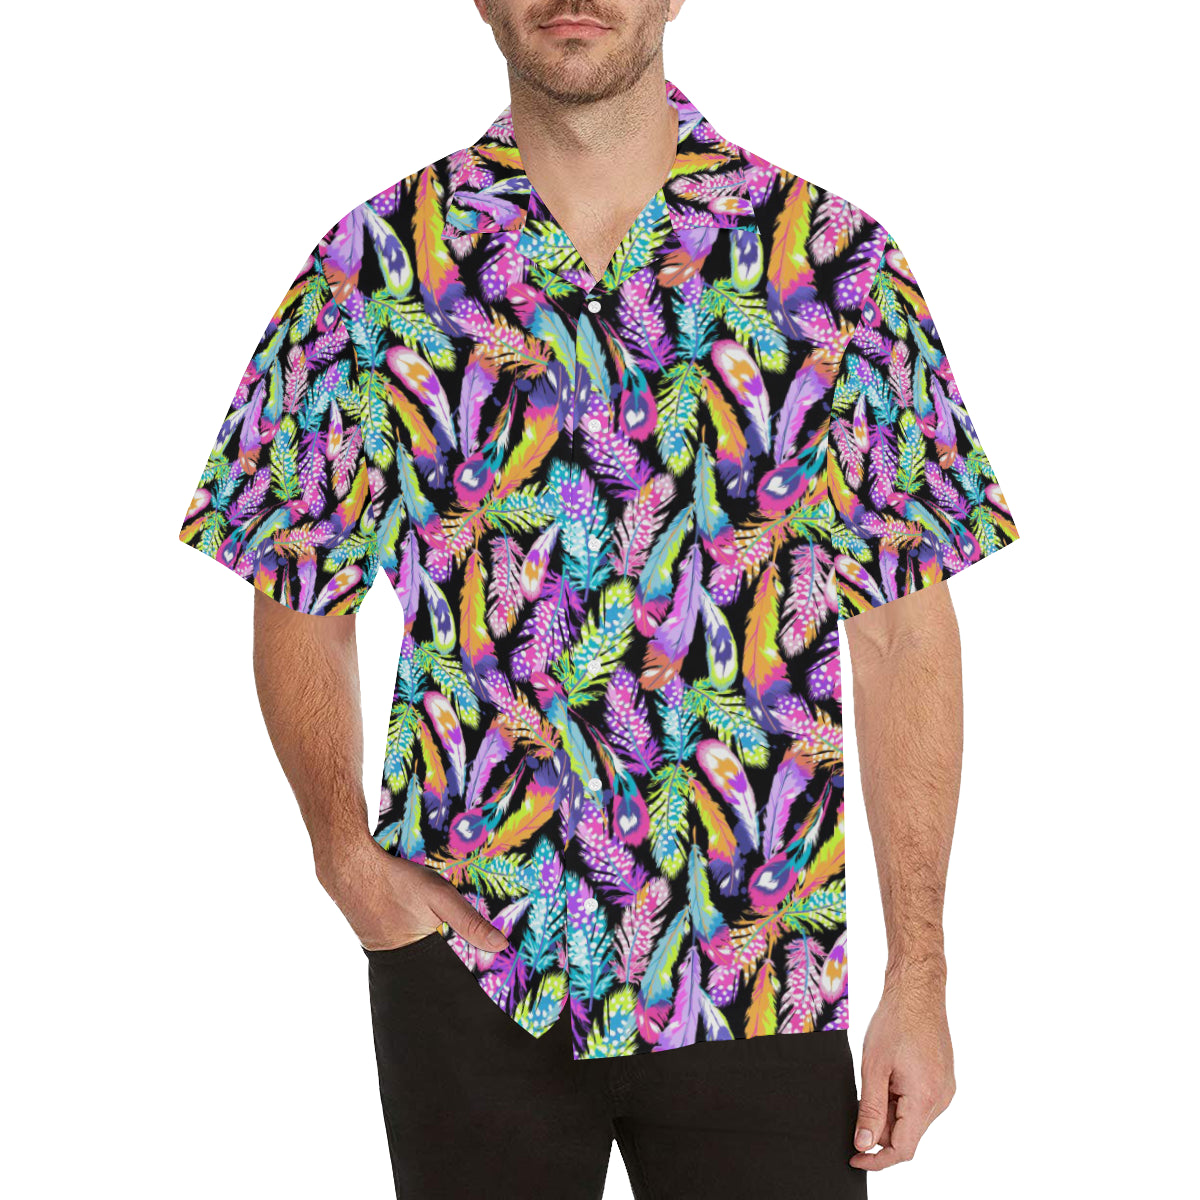 Neon Feather Pattern Print Design A02 Hawaiian Shirt